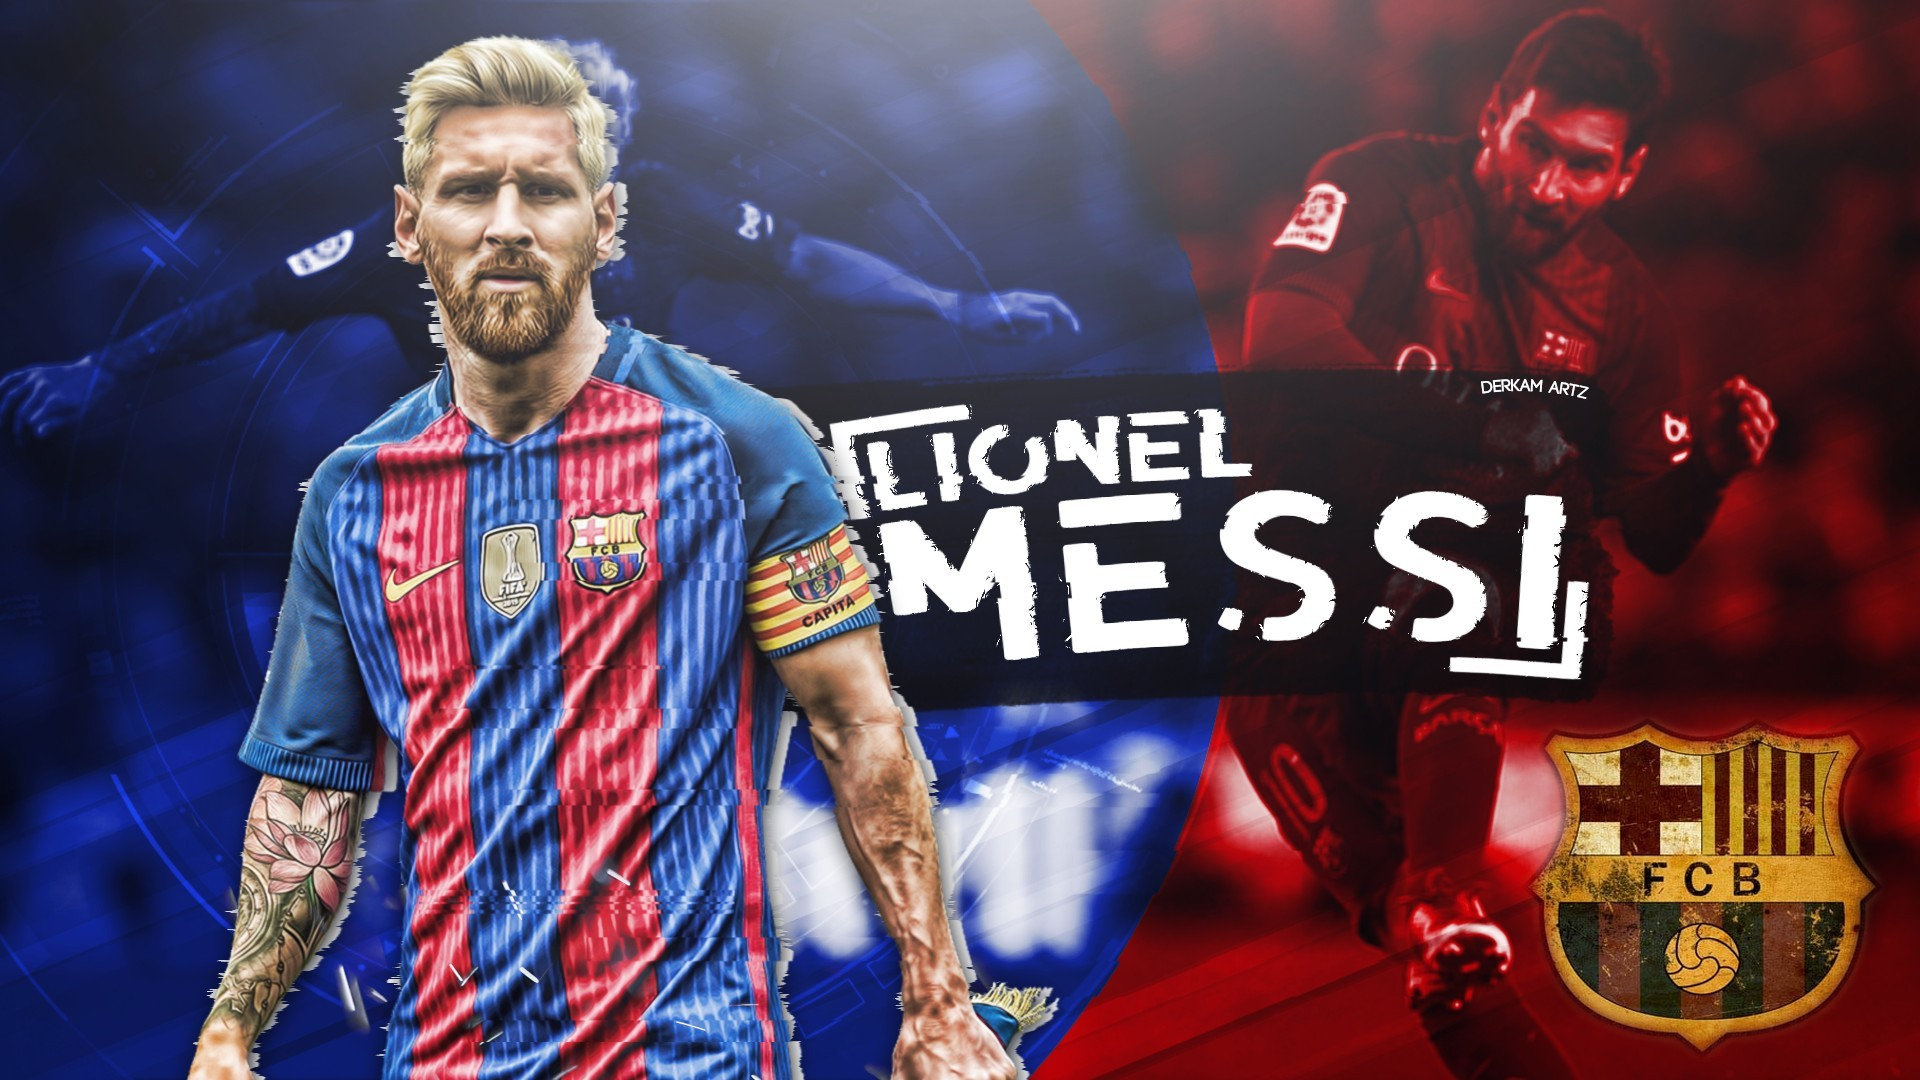 Messi Desktop Wallpapers with resolution 1920x1080 pixel. You can make this wallpaper for your Mac or Windows Desktop Background, iPhone, Android or Tablet and another Smartphone device